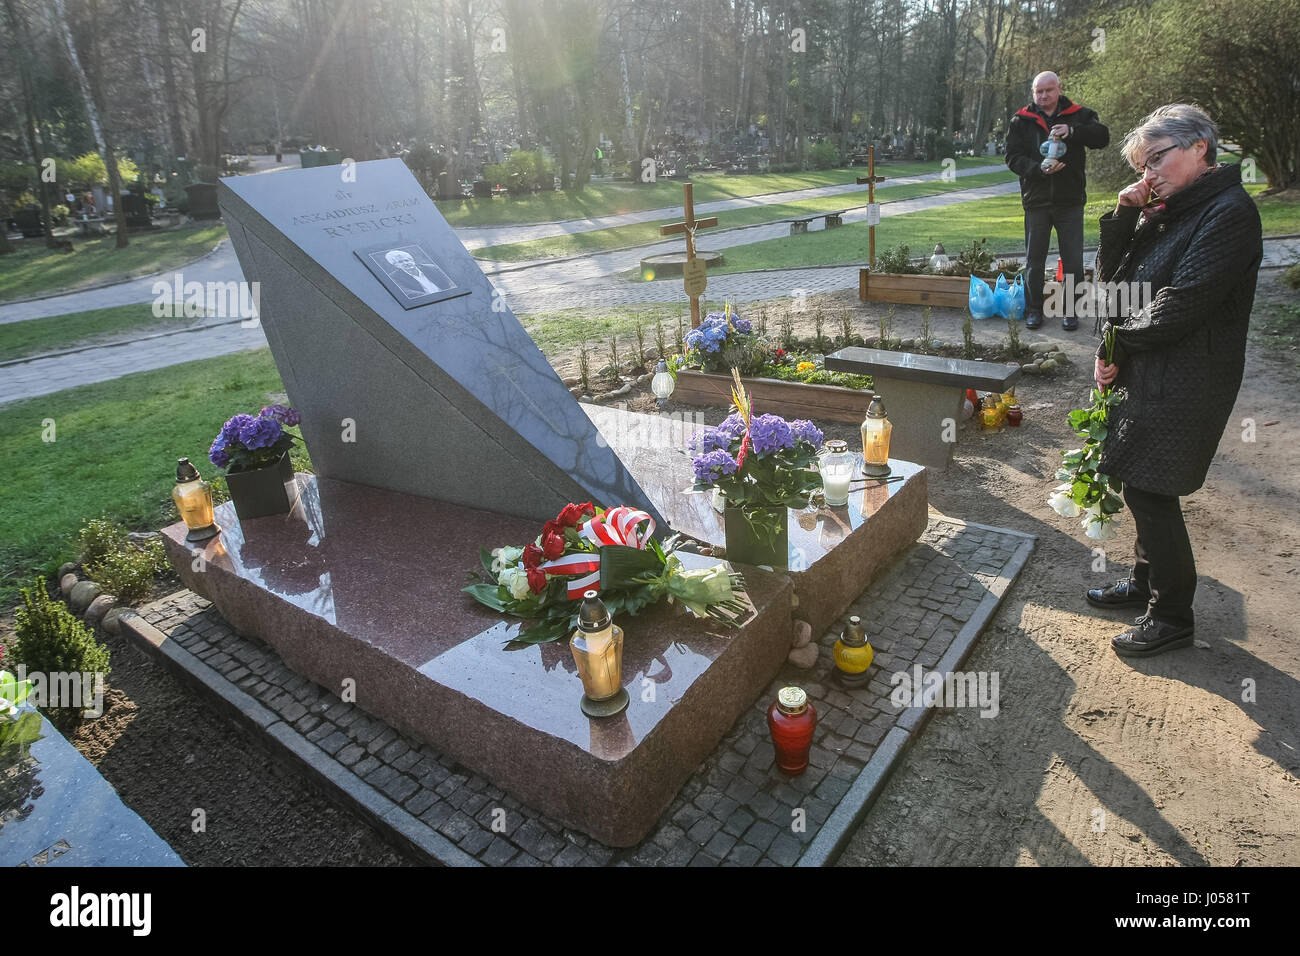 Gdansk Poland 10th April 2017 Aram Rybicki Grave Is Seen On 10 Stock Photo Alamy s11 euw chall | how to dominate the jungle as graves. alamy